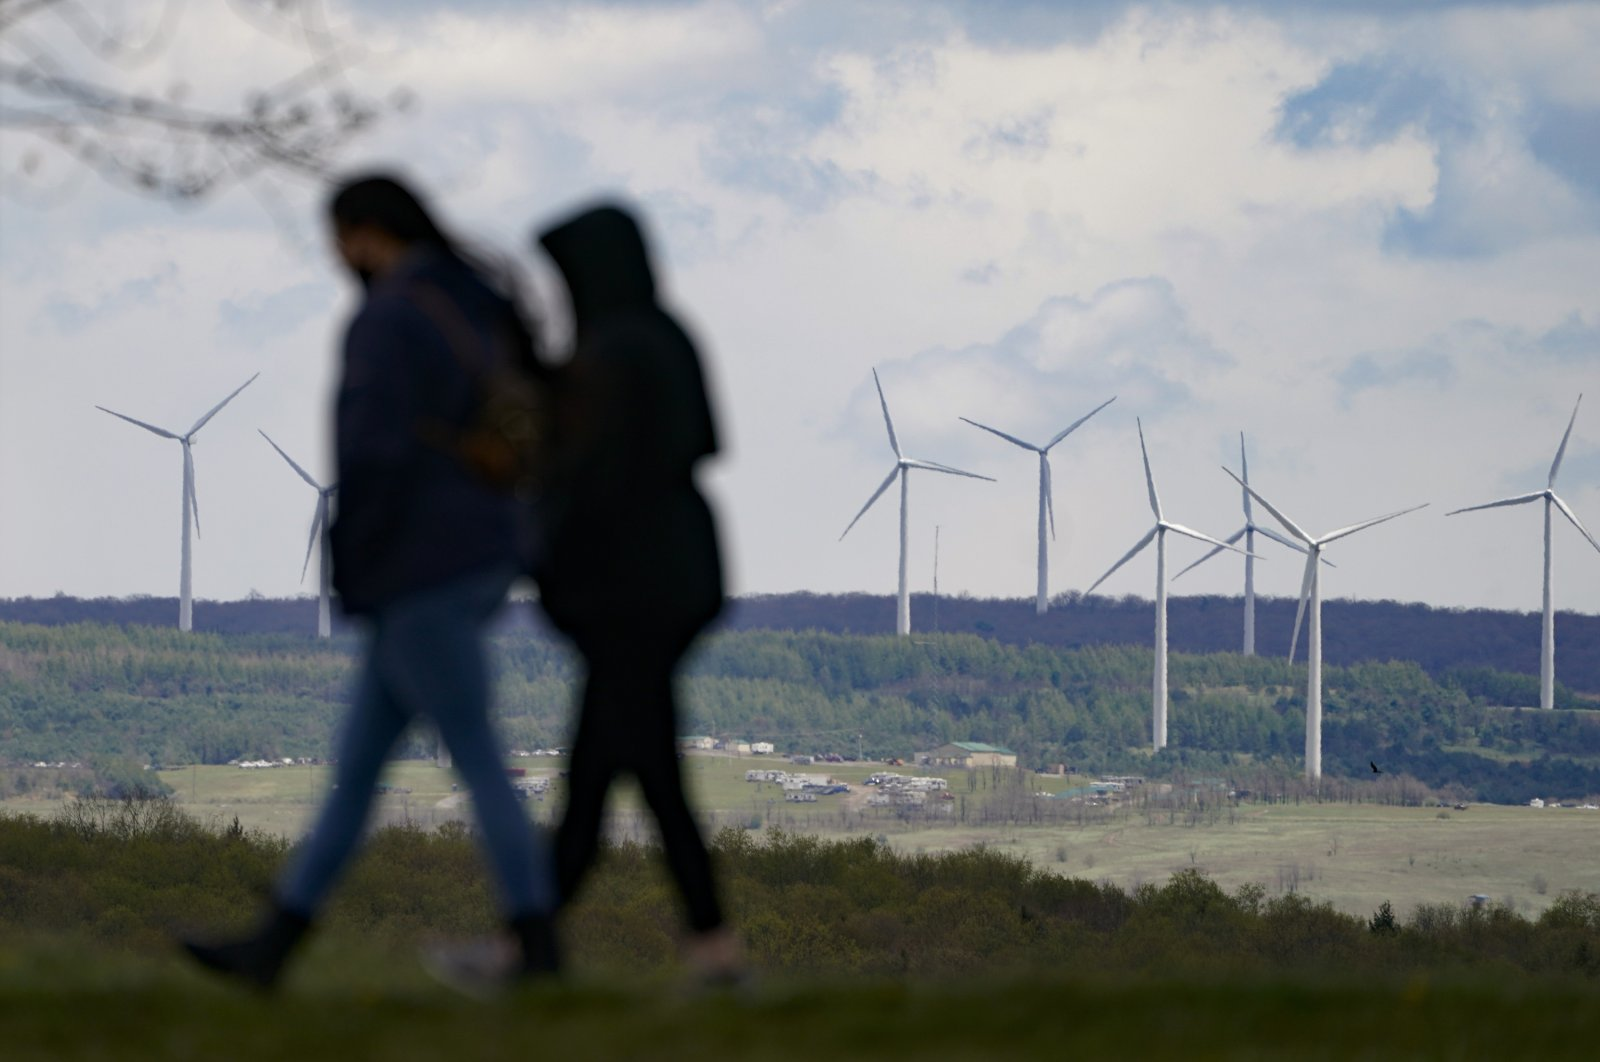 People are silhouetted as they stroll past power-generating wind turbines visible from a walking path at the Flight 93 National Memorial in Shanksville, Pennsylvania, U.S., May 8, 2021. (AP Photo)